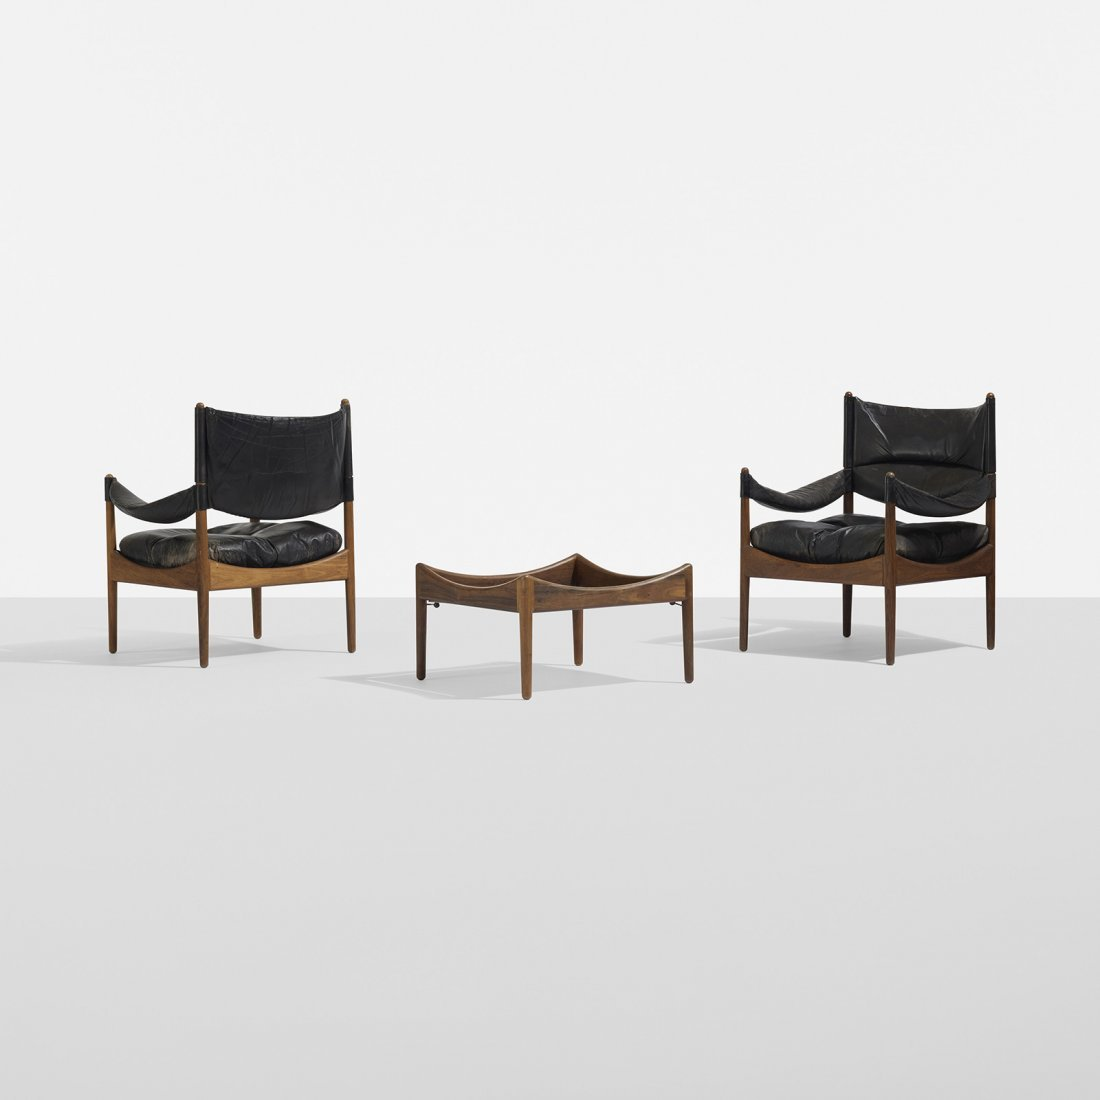 Kristian Vedel pair of Modus chairs and table - 2